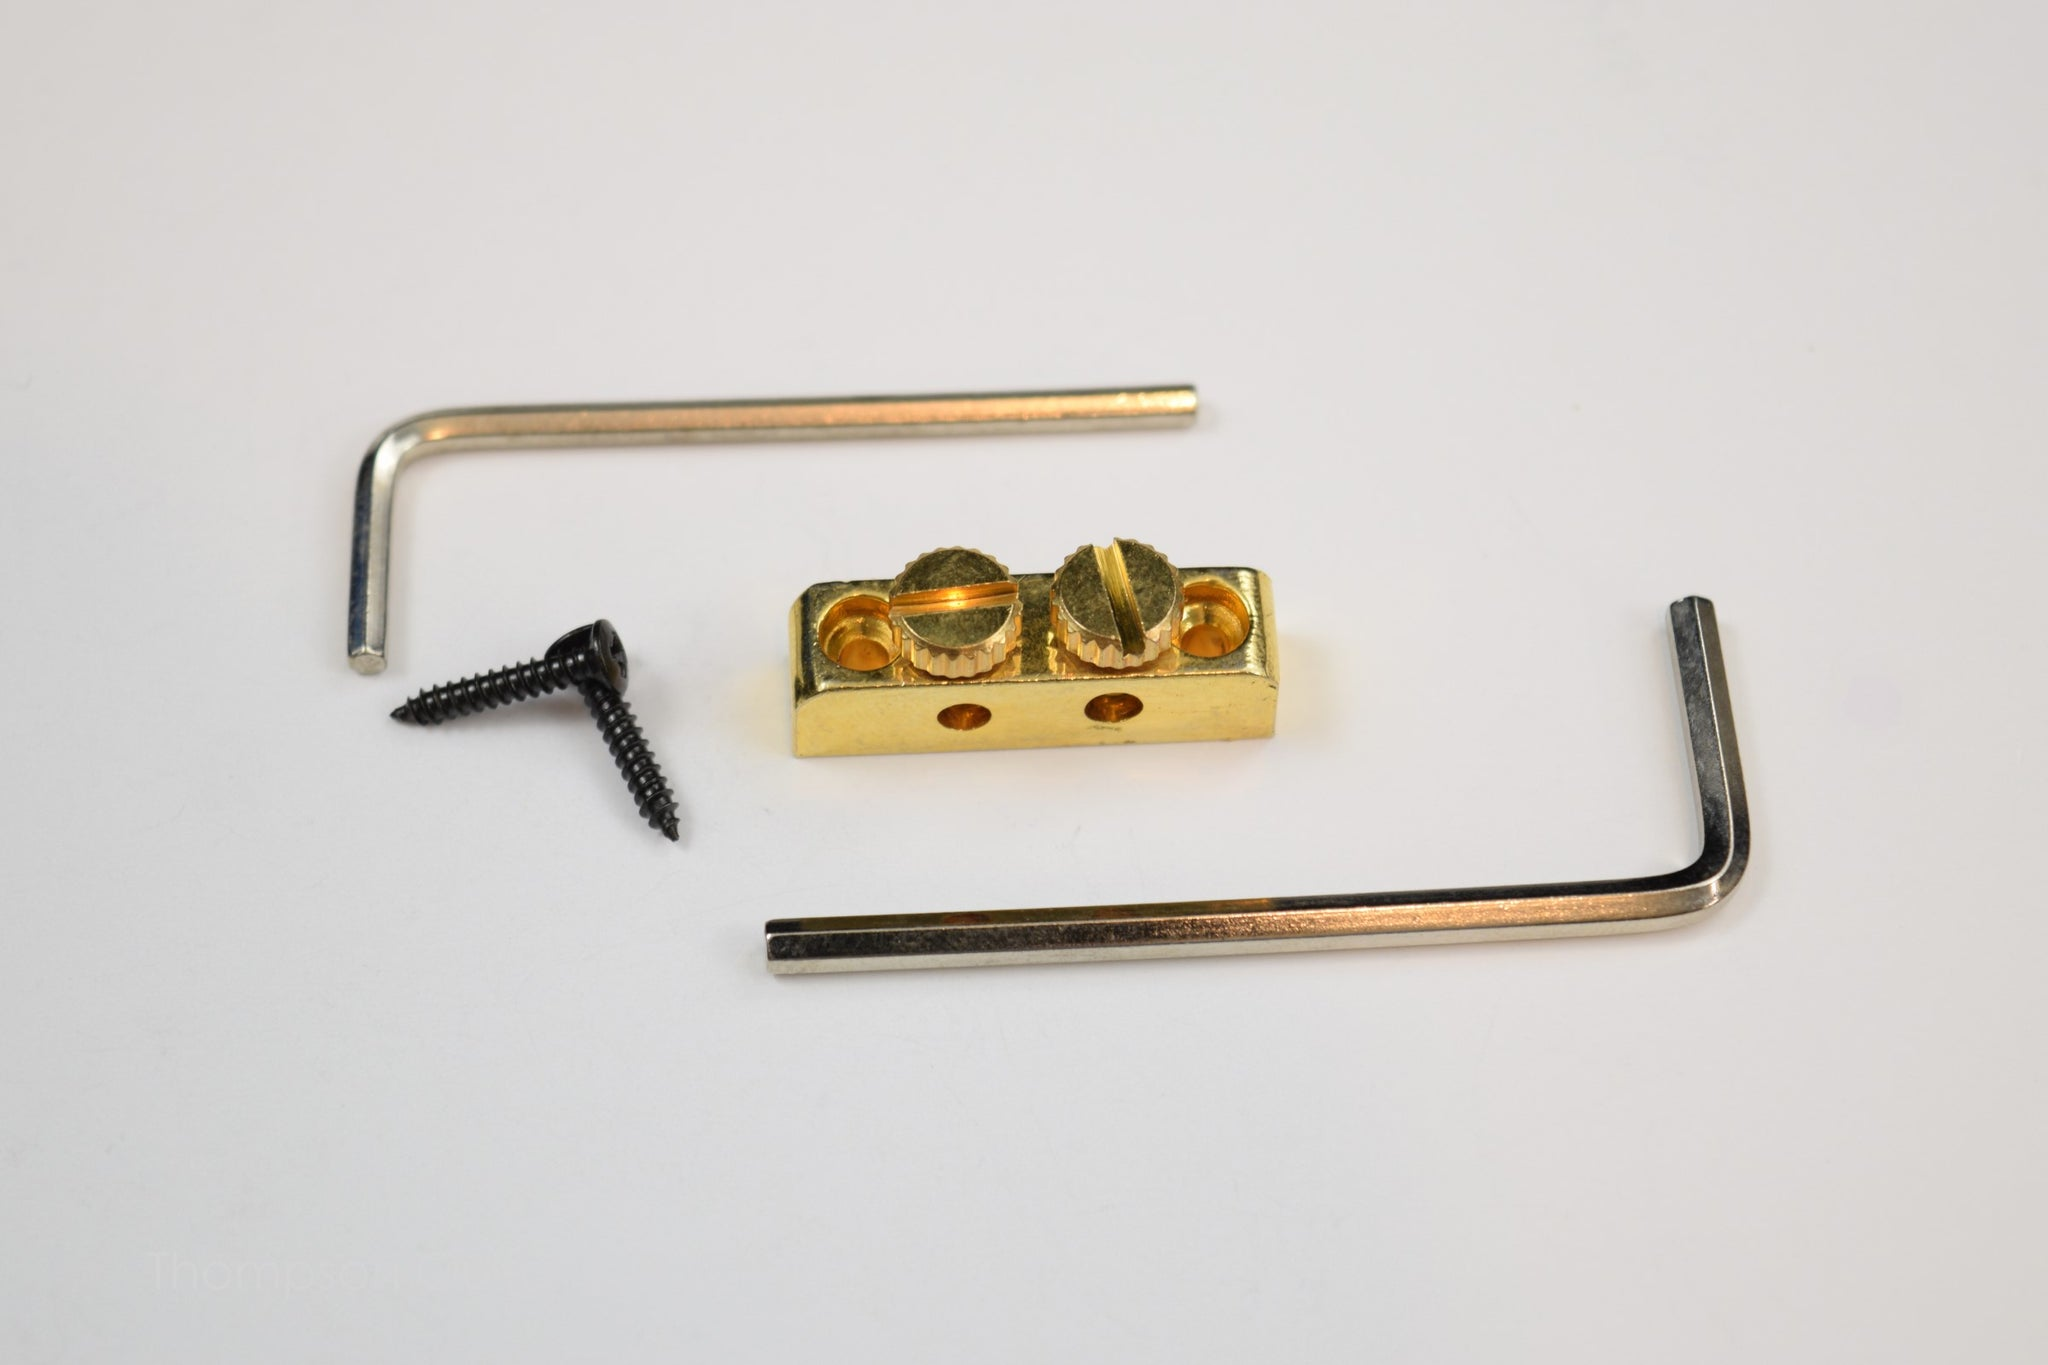 Gold Allen Wrench Holder Kit